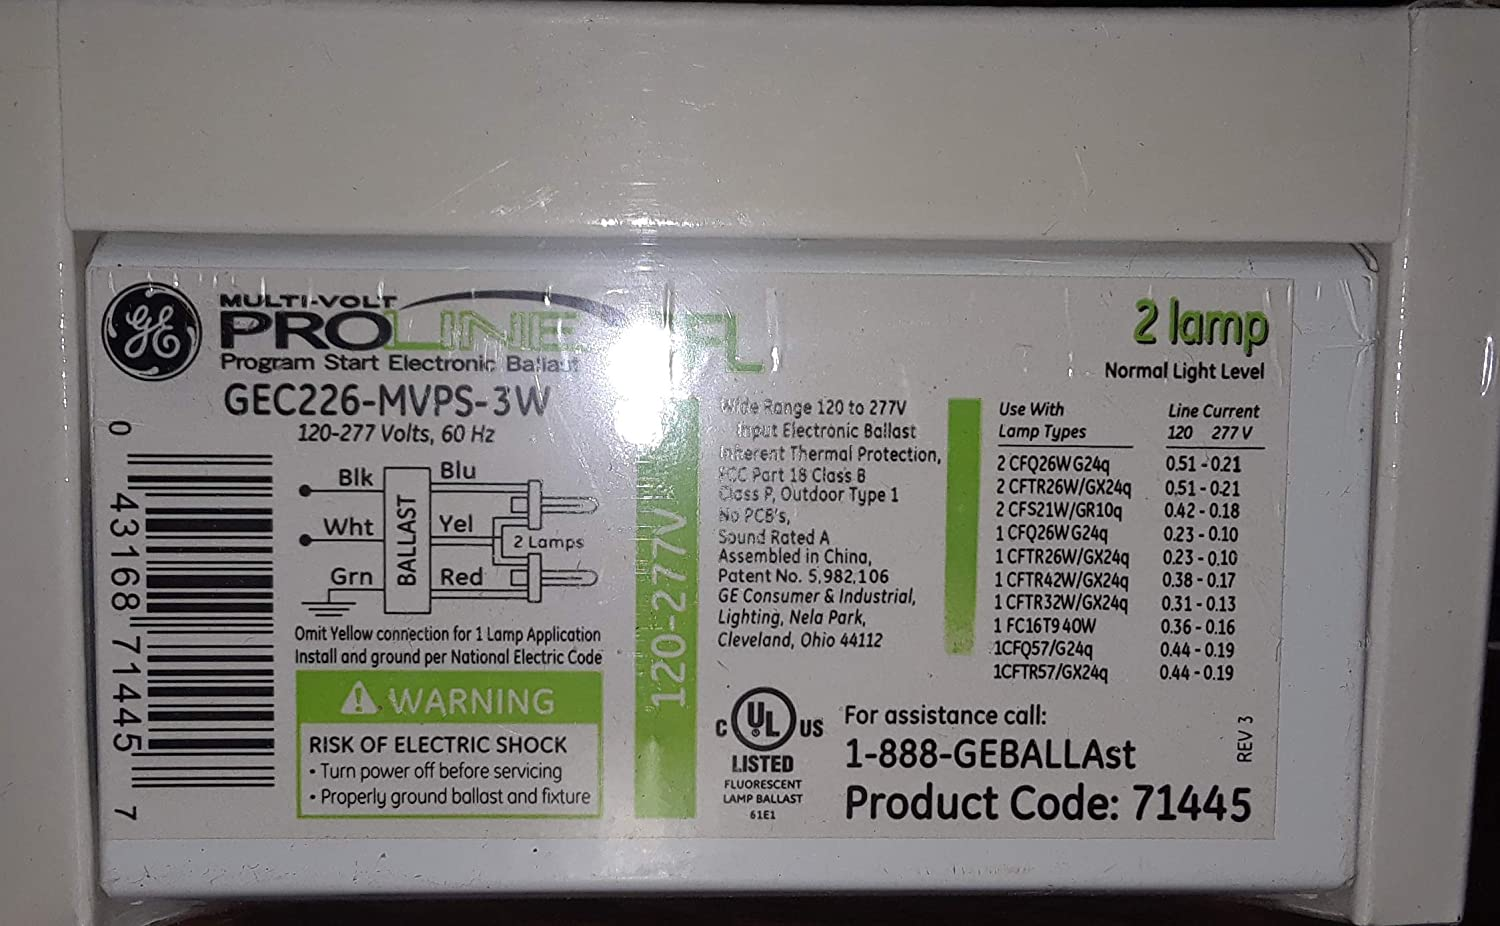 GE 63097 - GEC226-MVPS-3W Compact Fluorescent Ballast (10-pack) General Electric